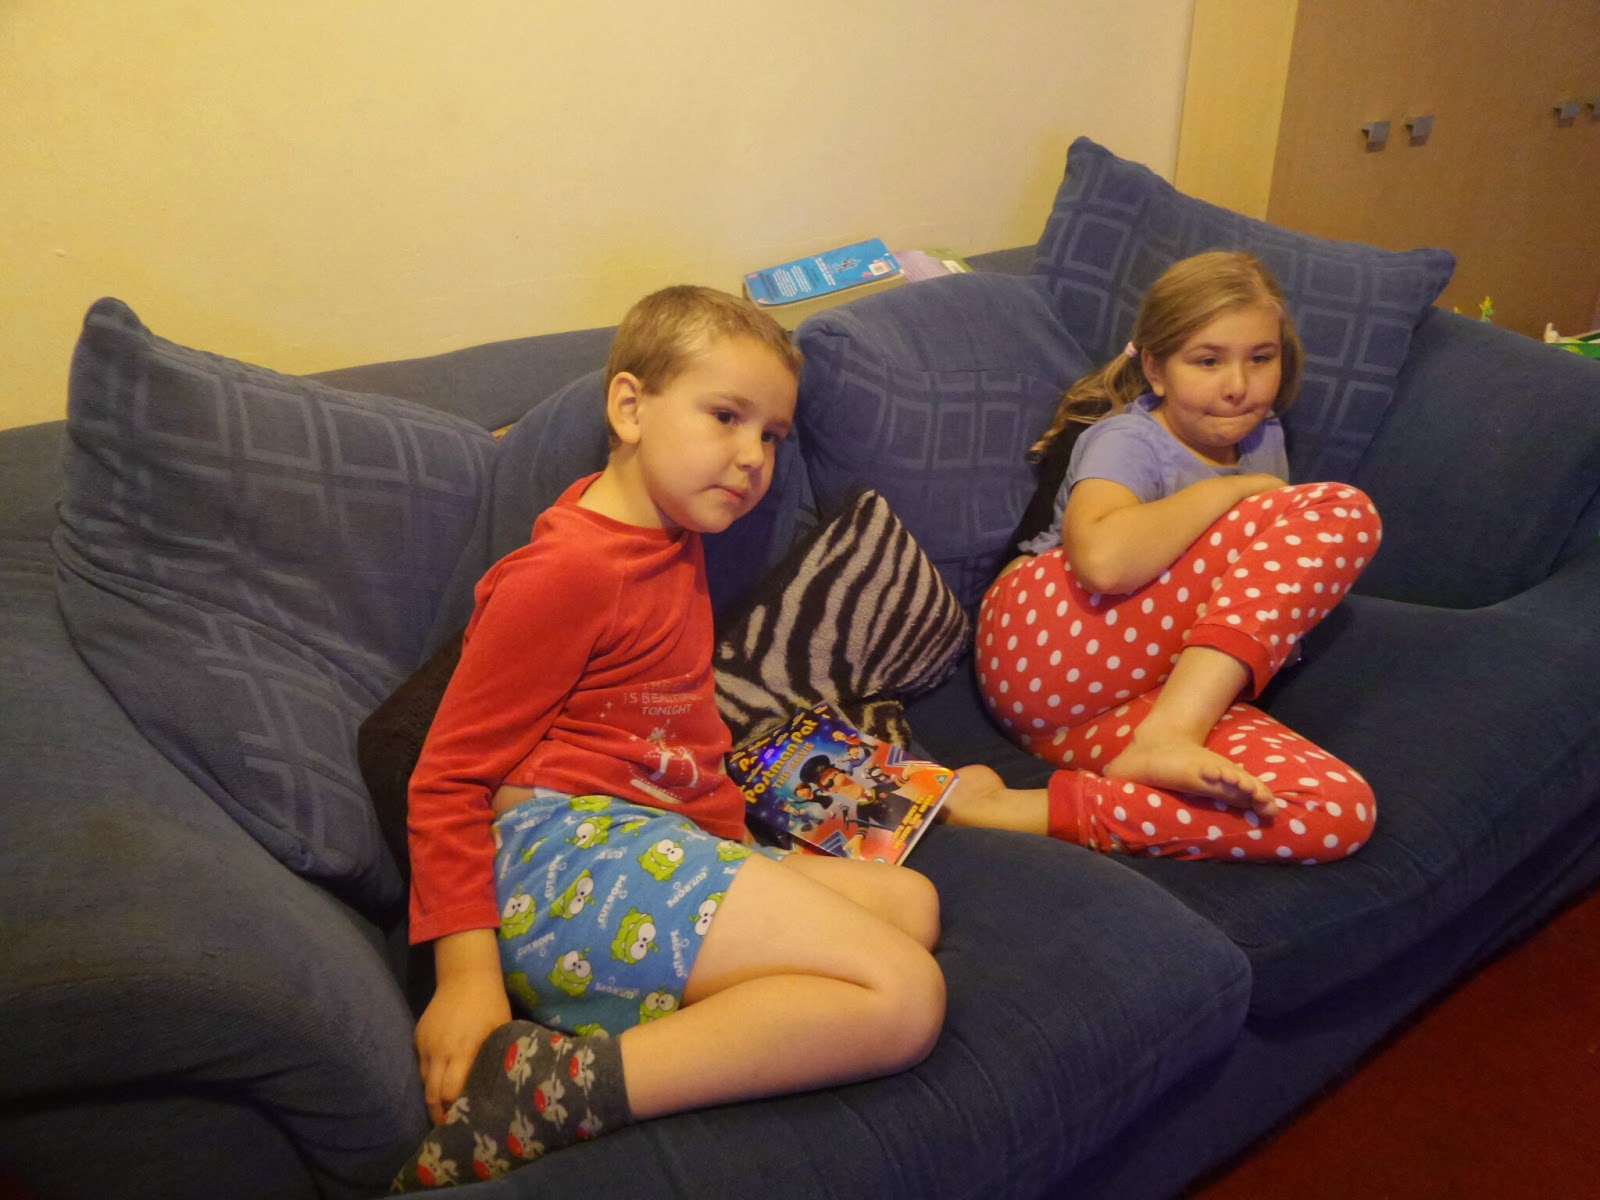 The children watching Postman Pat The Movie DVD